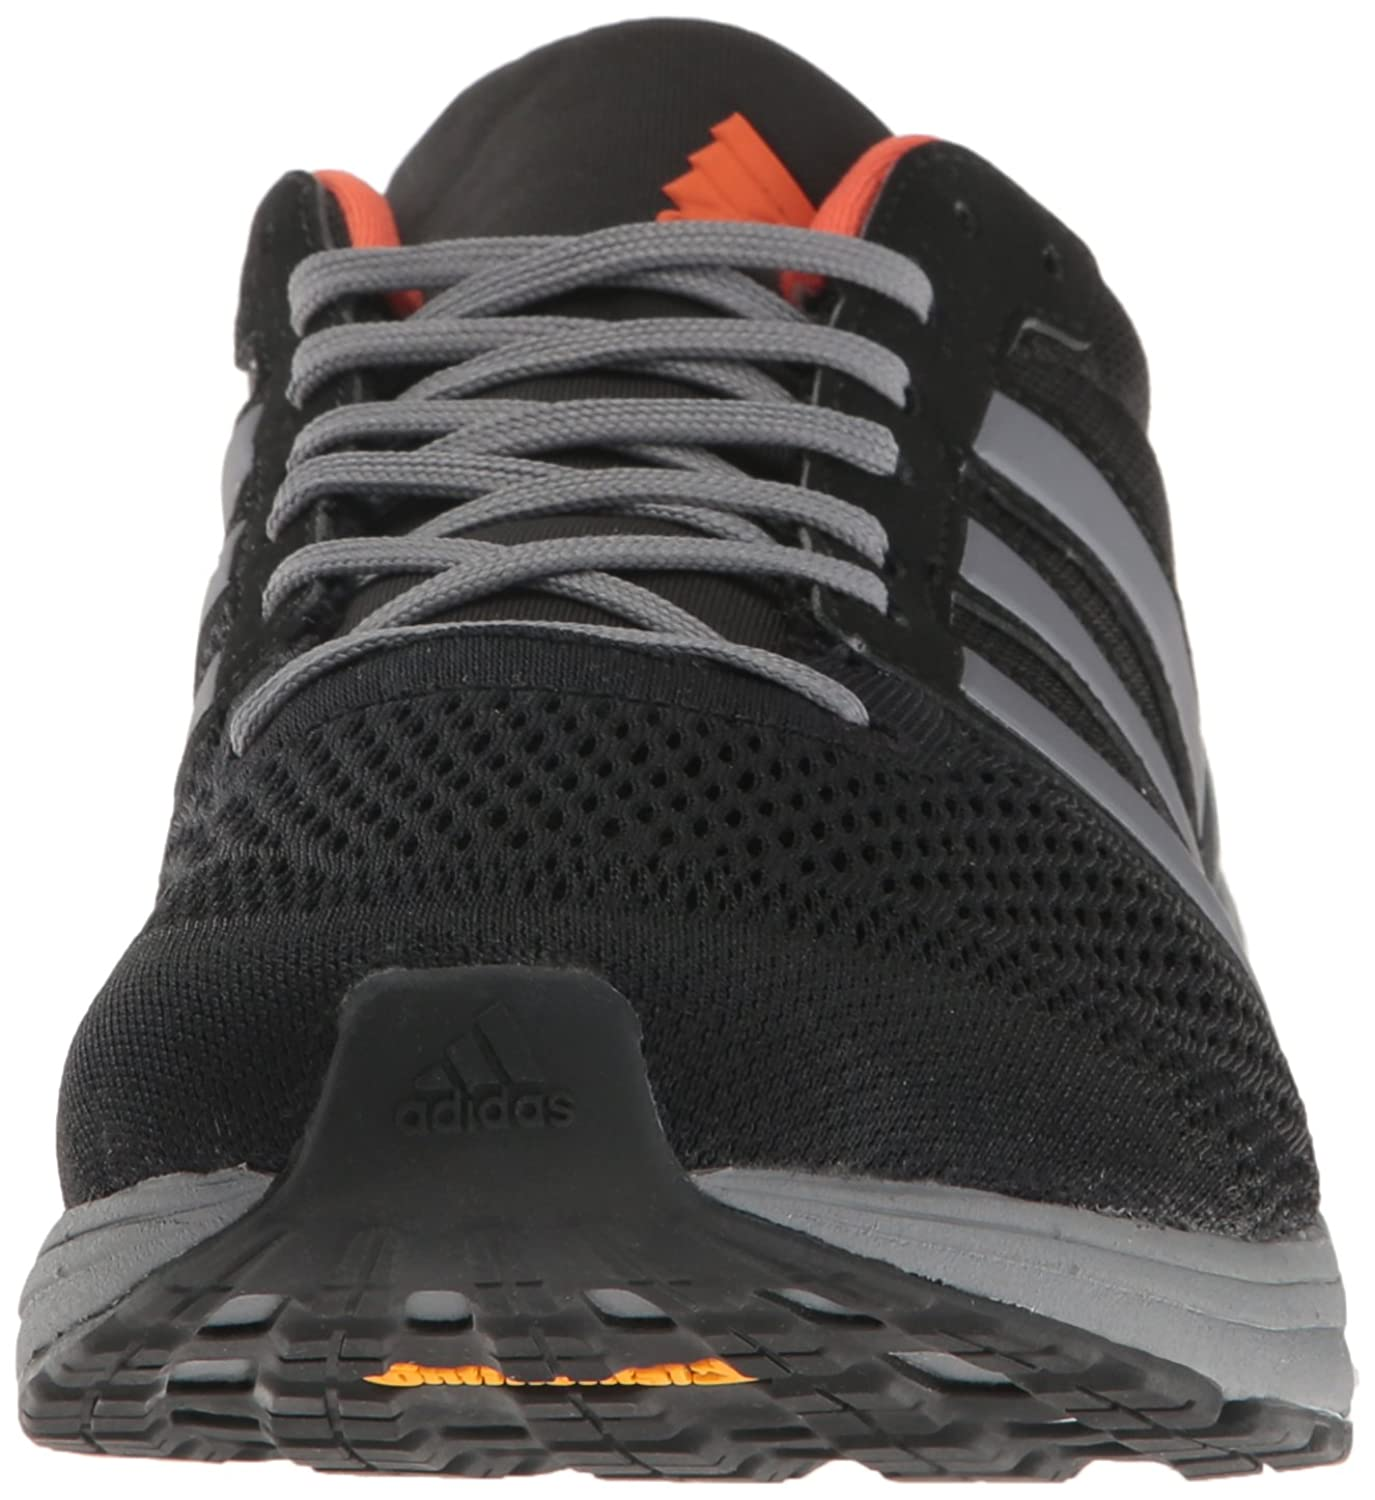 Adidas Adizero Boston Impulso 6 Amazon jGX76bXfK